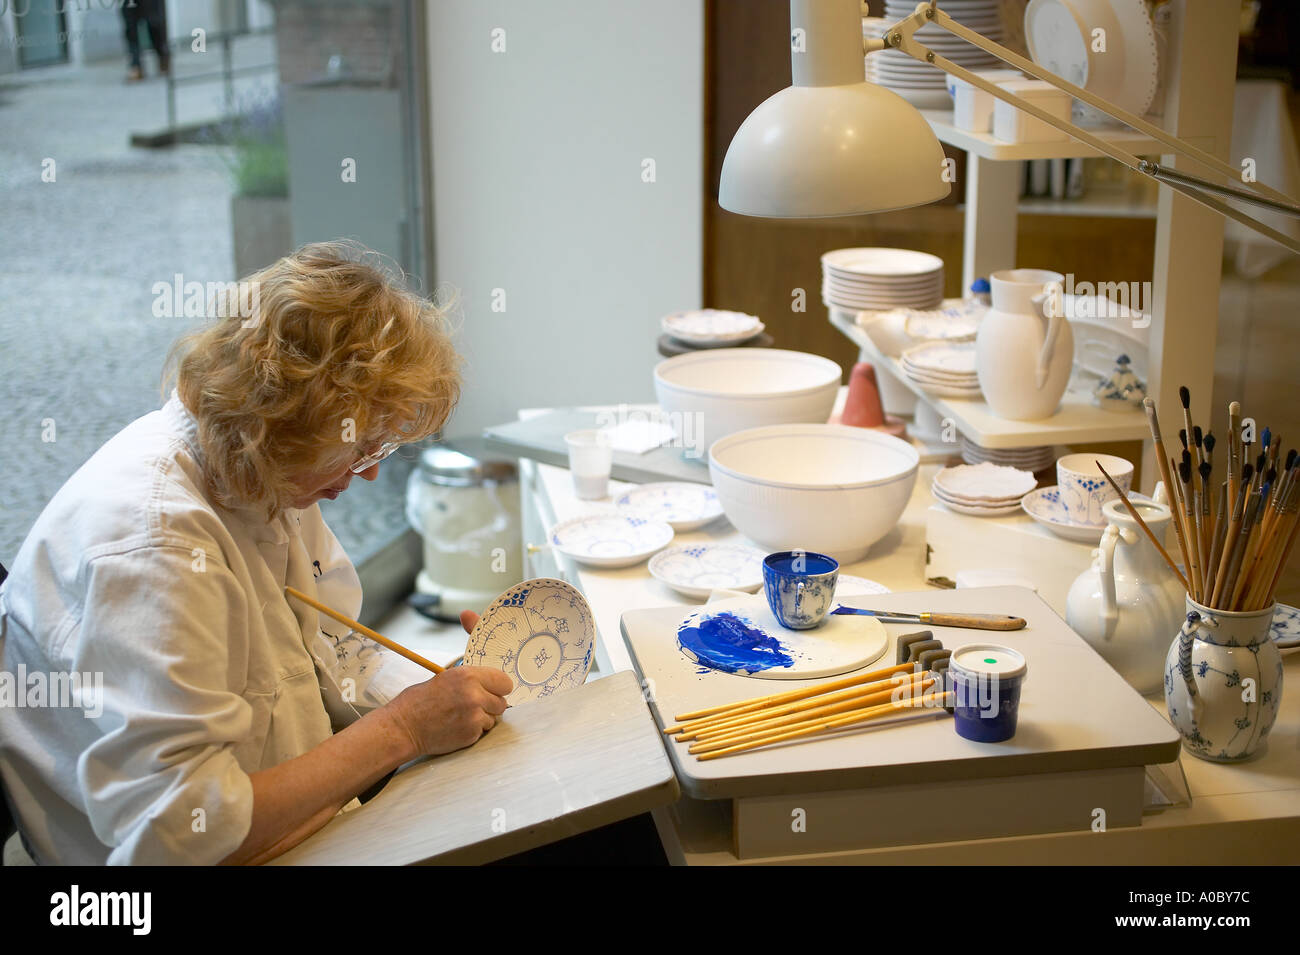 Woman painting a plate at 'Royal Copenhagen Porcelain' factory shop, Copenhagen, Denmark, Europe, - Stock Image